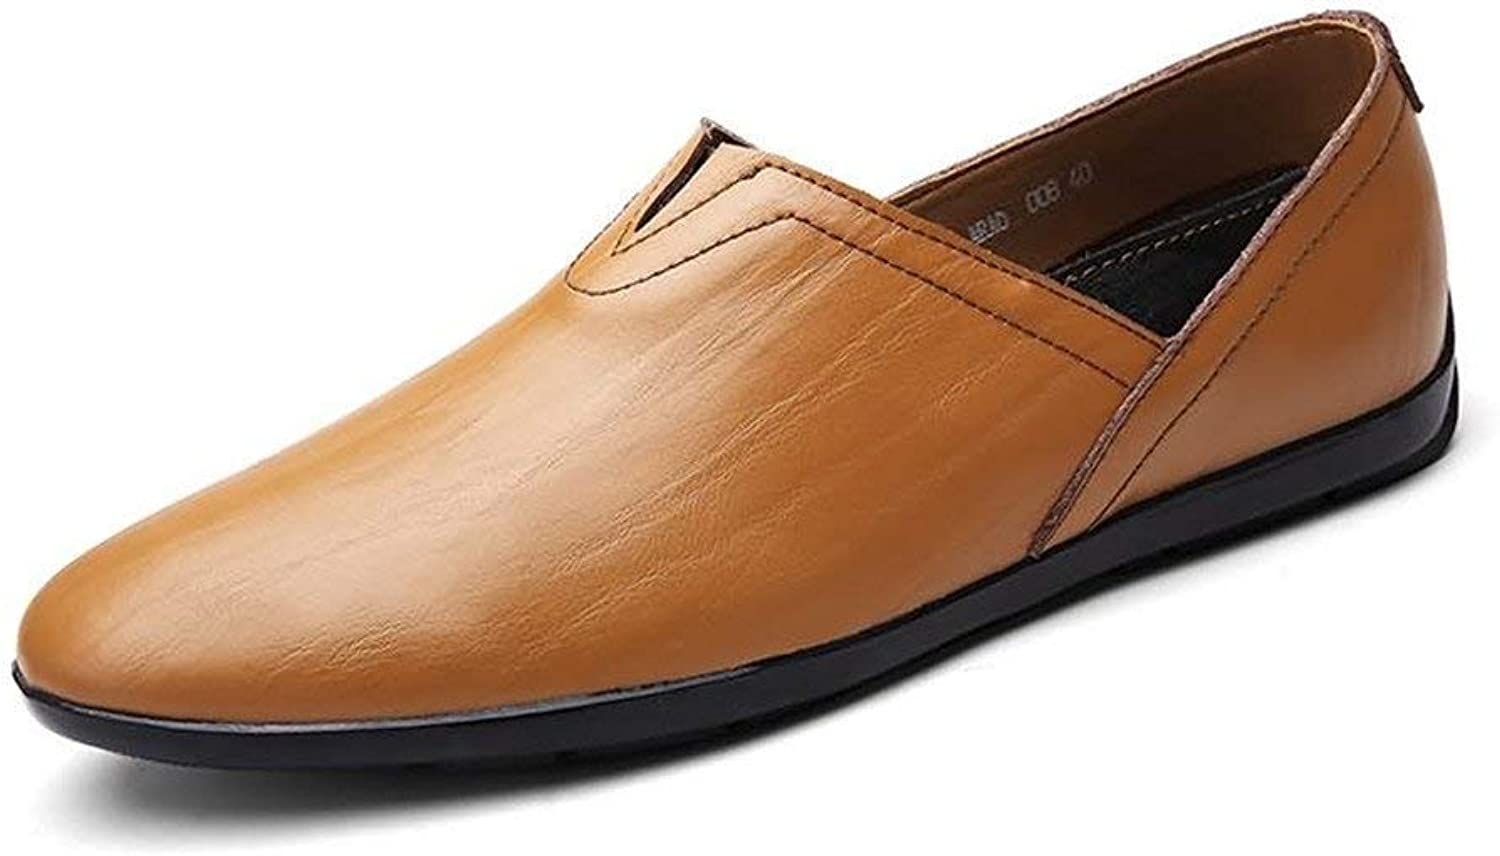 Men's Moccasins shoes, Men Loafers PU Leather Slip-on Fashionable Moccasins Lightweight Minimalism Casual shoes (color  Yellow Brown, Size  40 EU) (color   As shown, Size   One size)